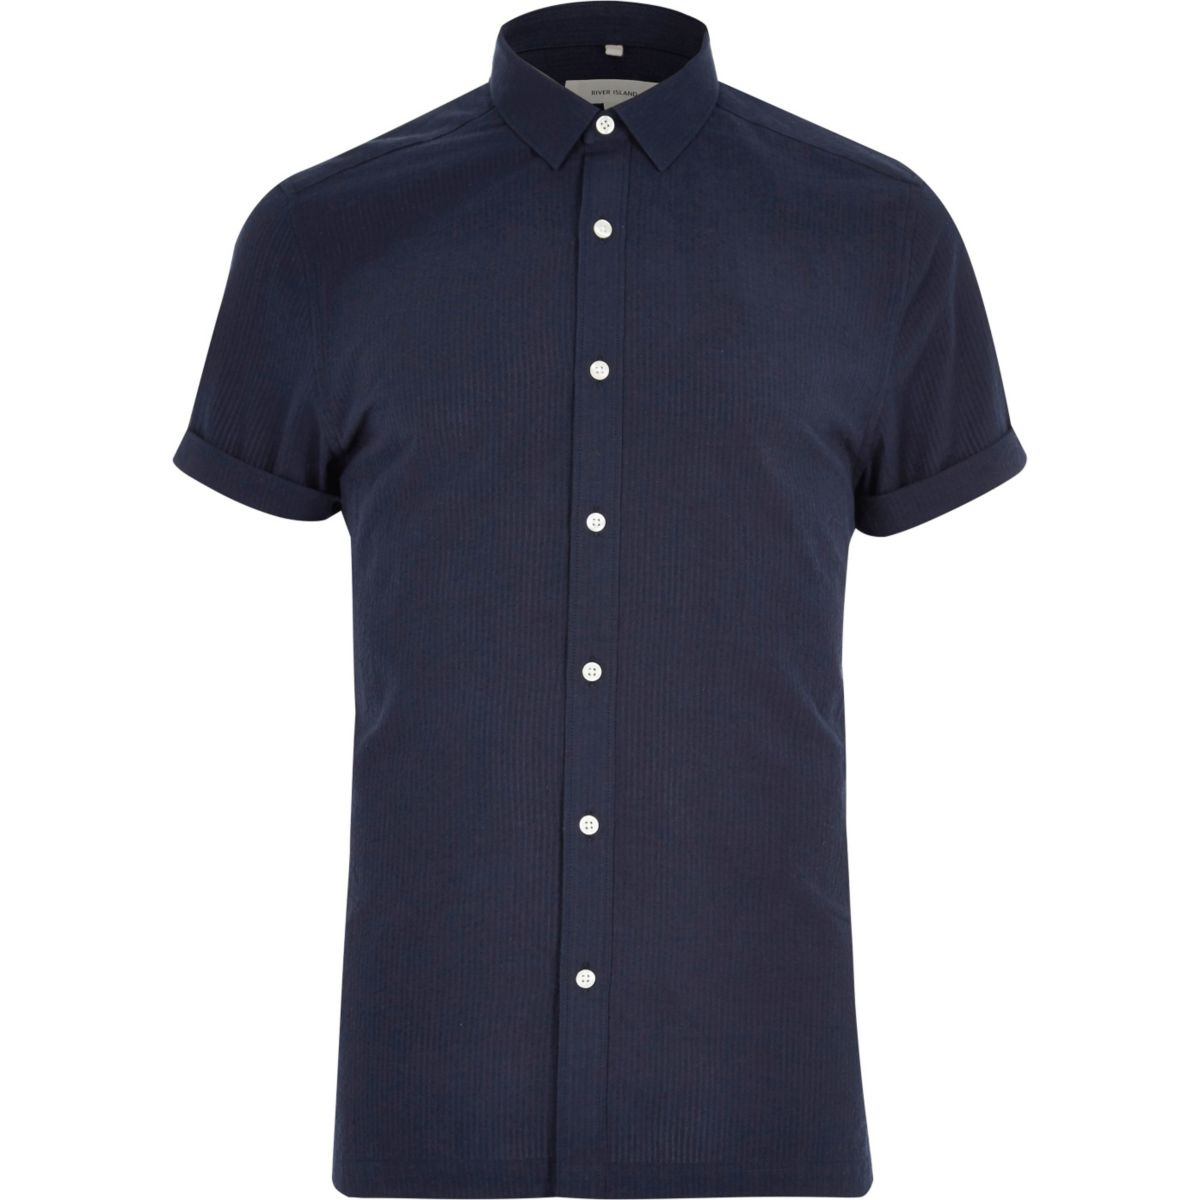 Navy seersucker short sleeve shirt shirts sale men for Mens short sleeve seersucker shirts